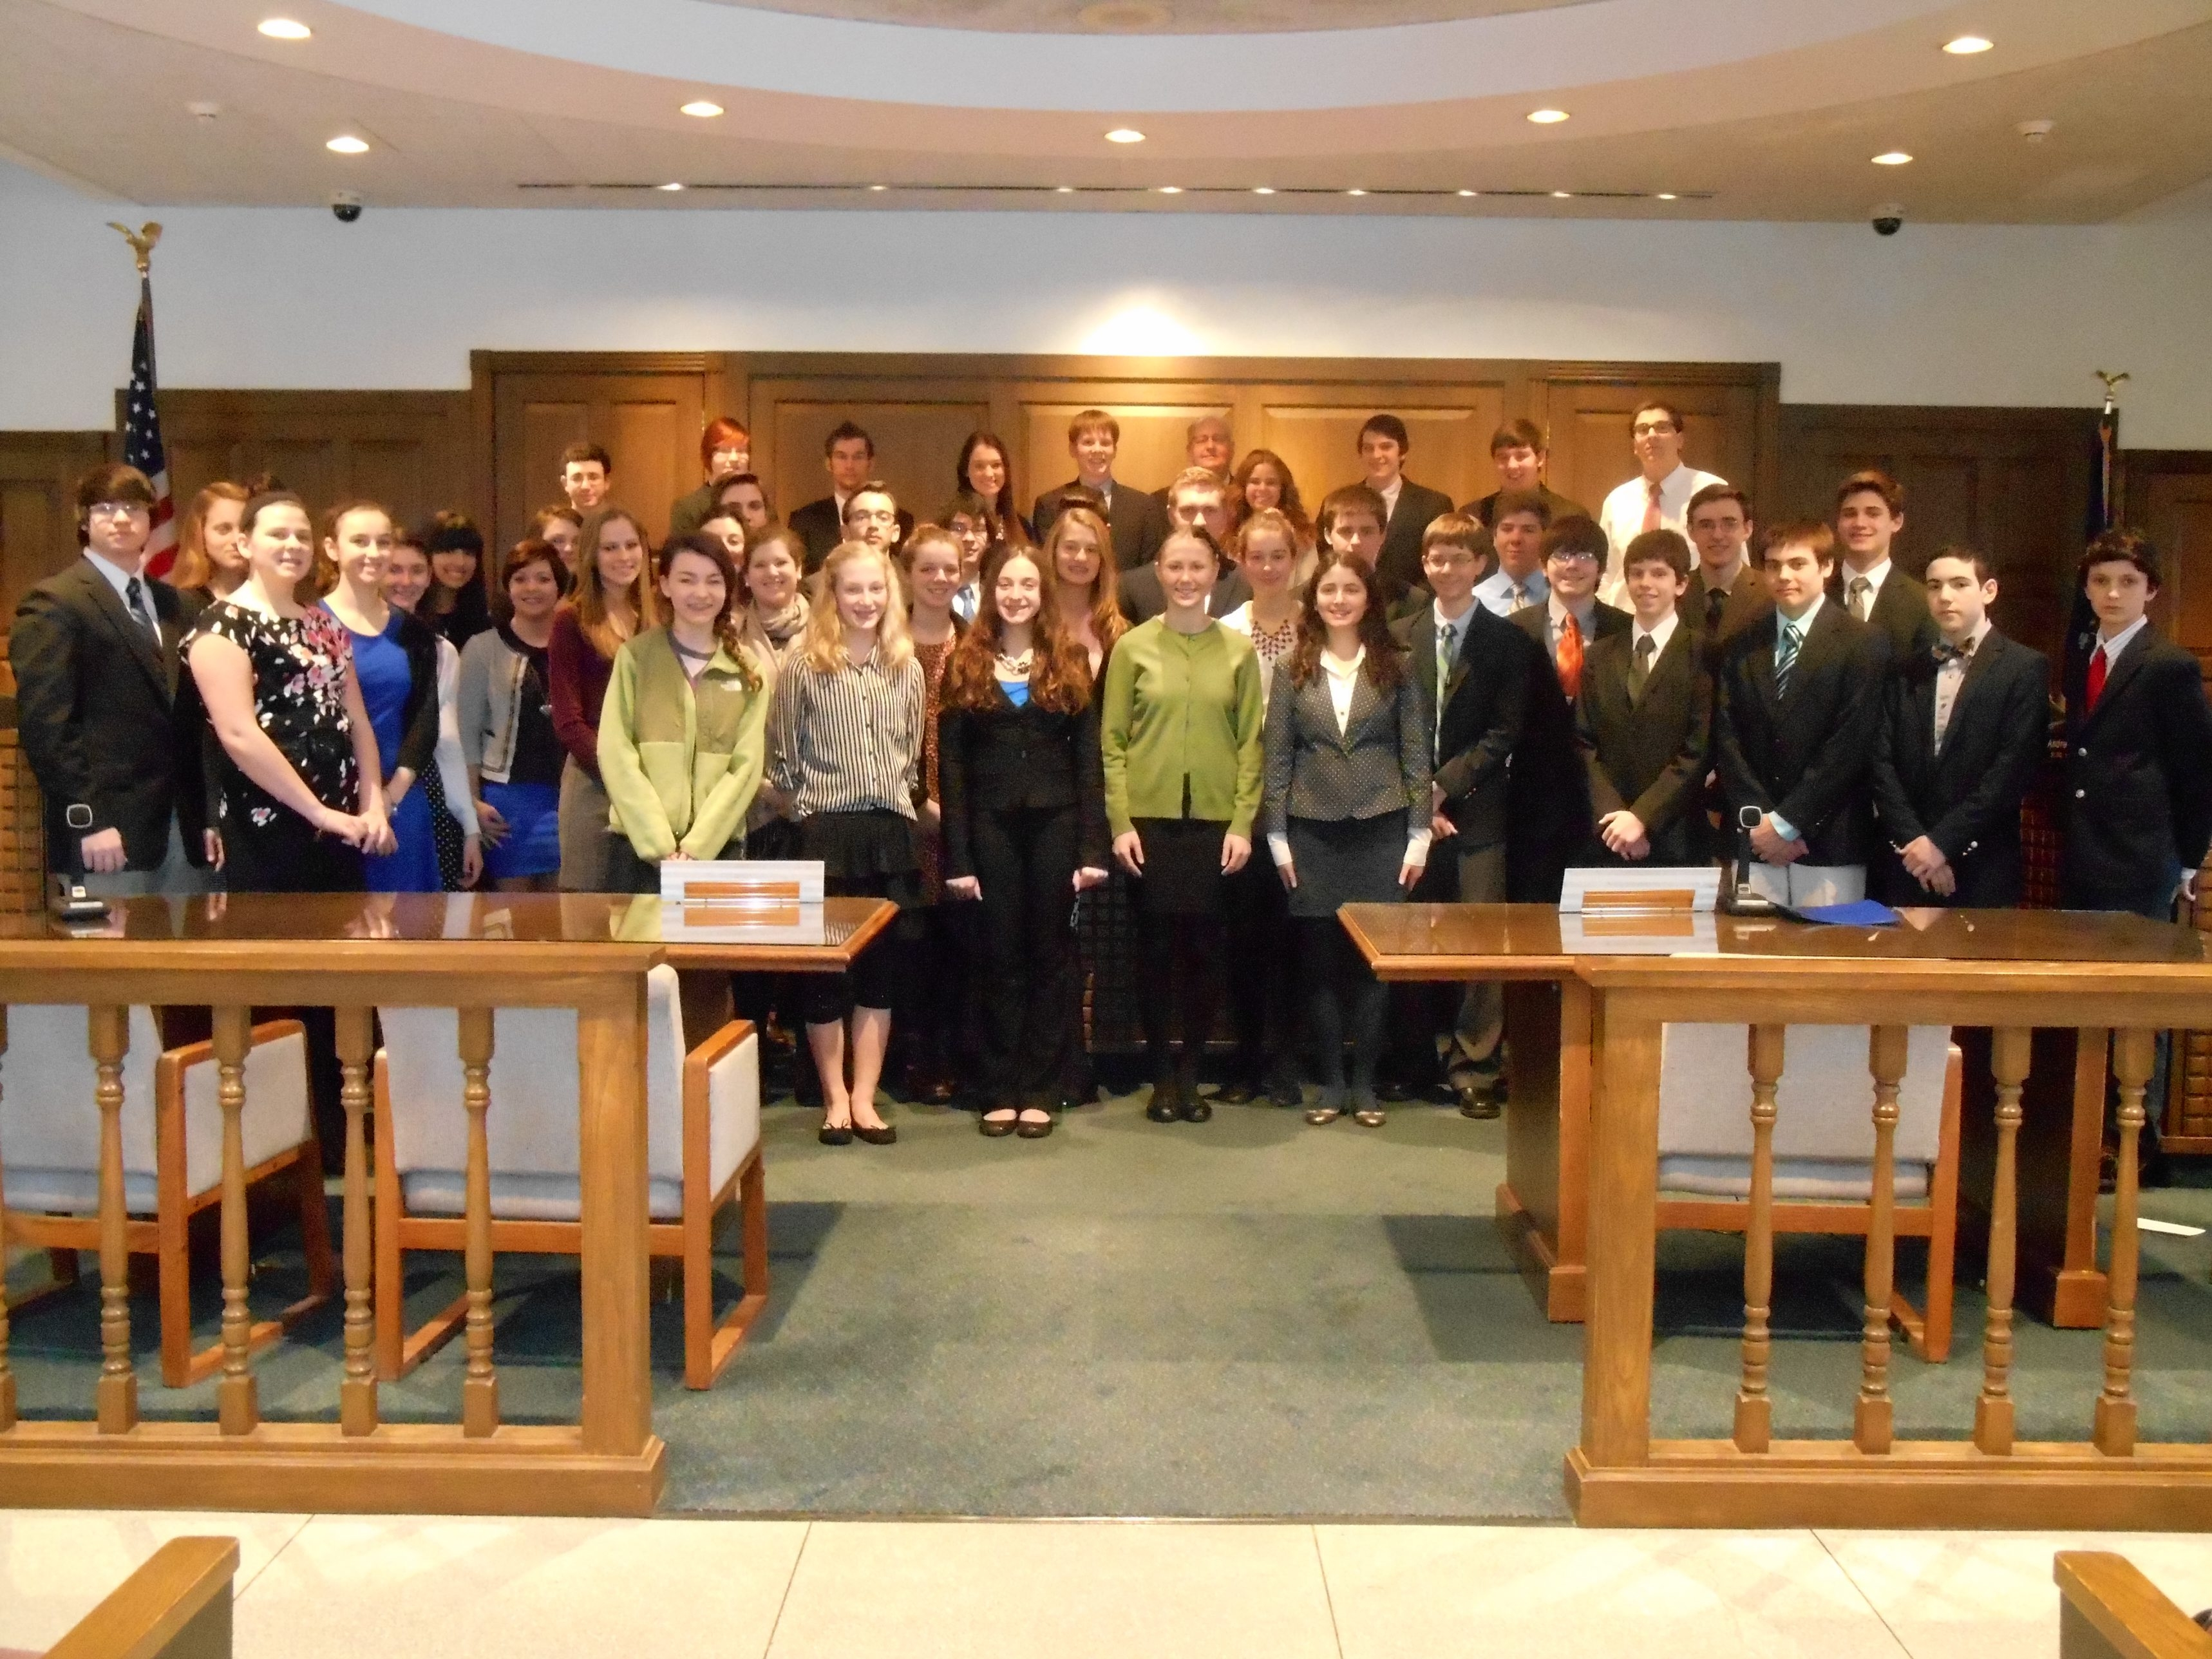 The new members of the Orchard Park Youth Court are sworn in.